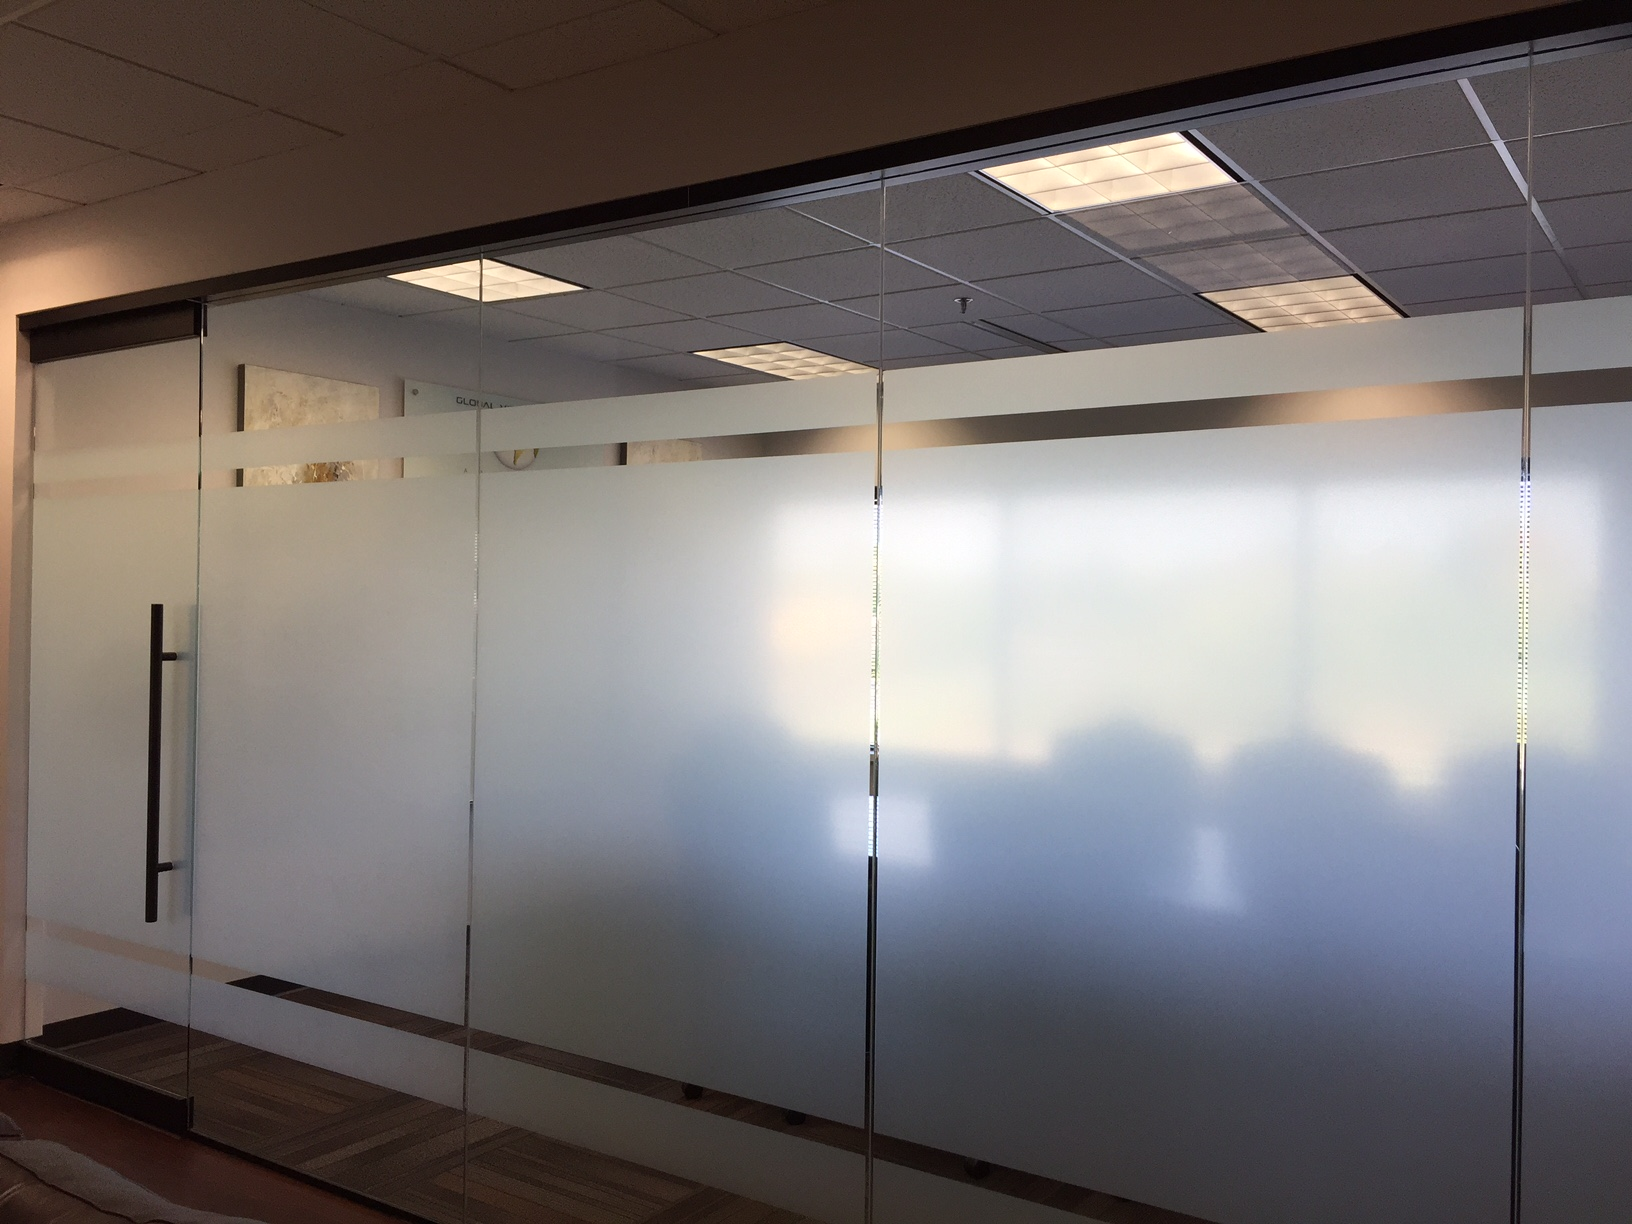 Custom Etched Glass On A Conference Room Wall In Waukesha Wi